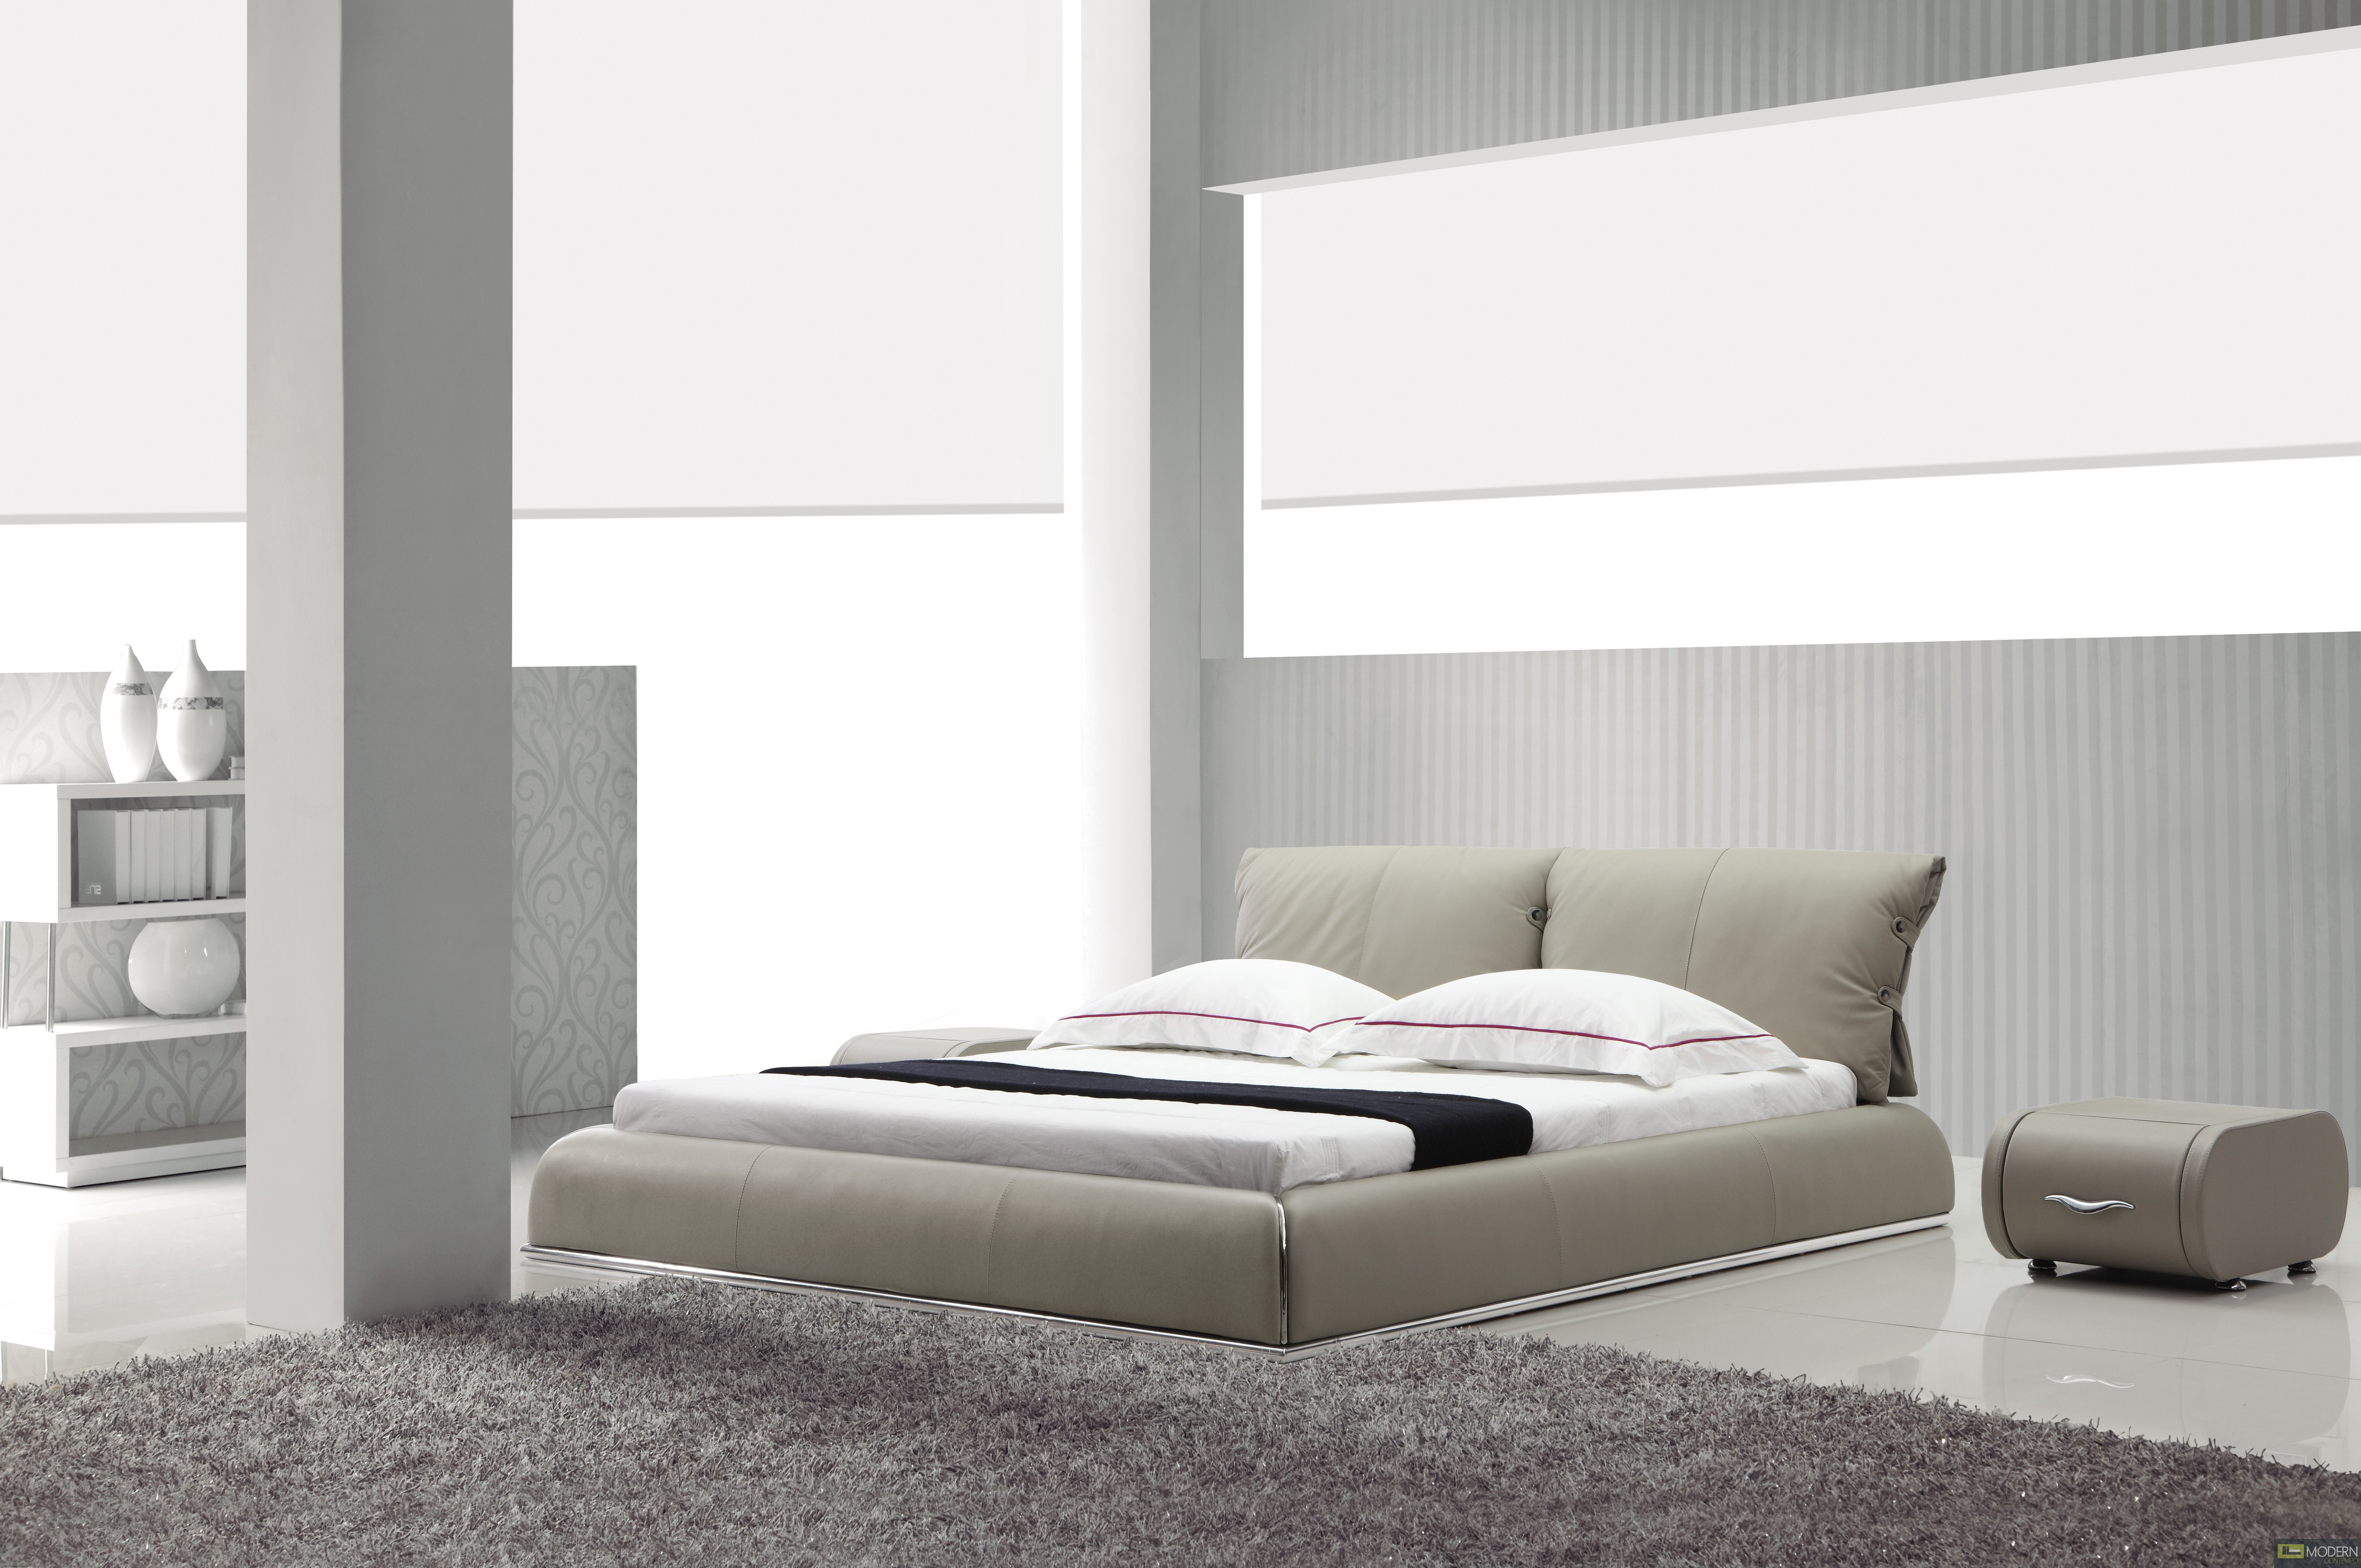 yeolani home modern contemporary beige leather platform bed fade -  yeolani home modern contemporary dark grey leather platform bed fade